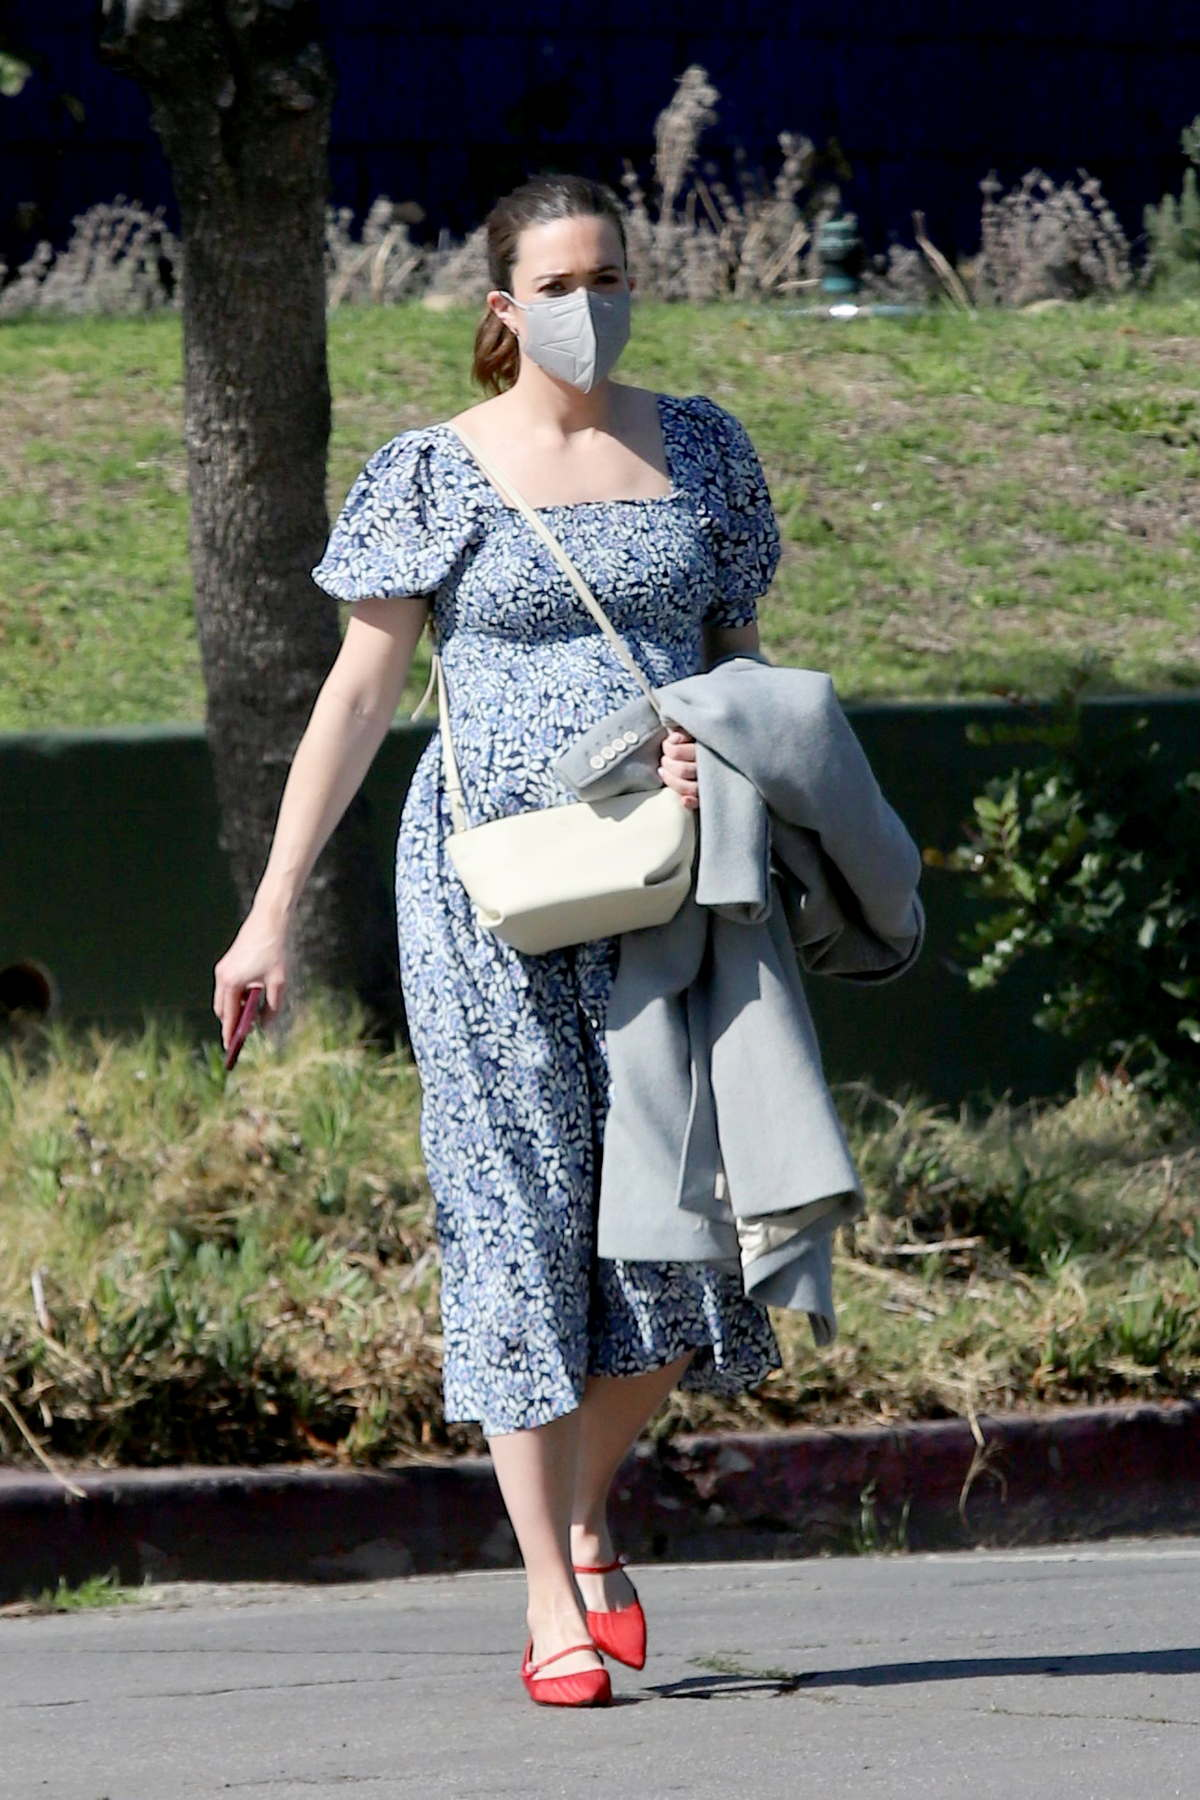 Mandy Moore shows her baby bump as she steps out wearing floral print blue dress and red flats in Los Angeles